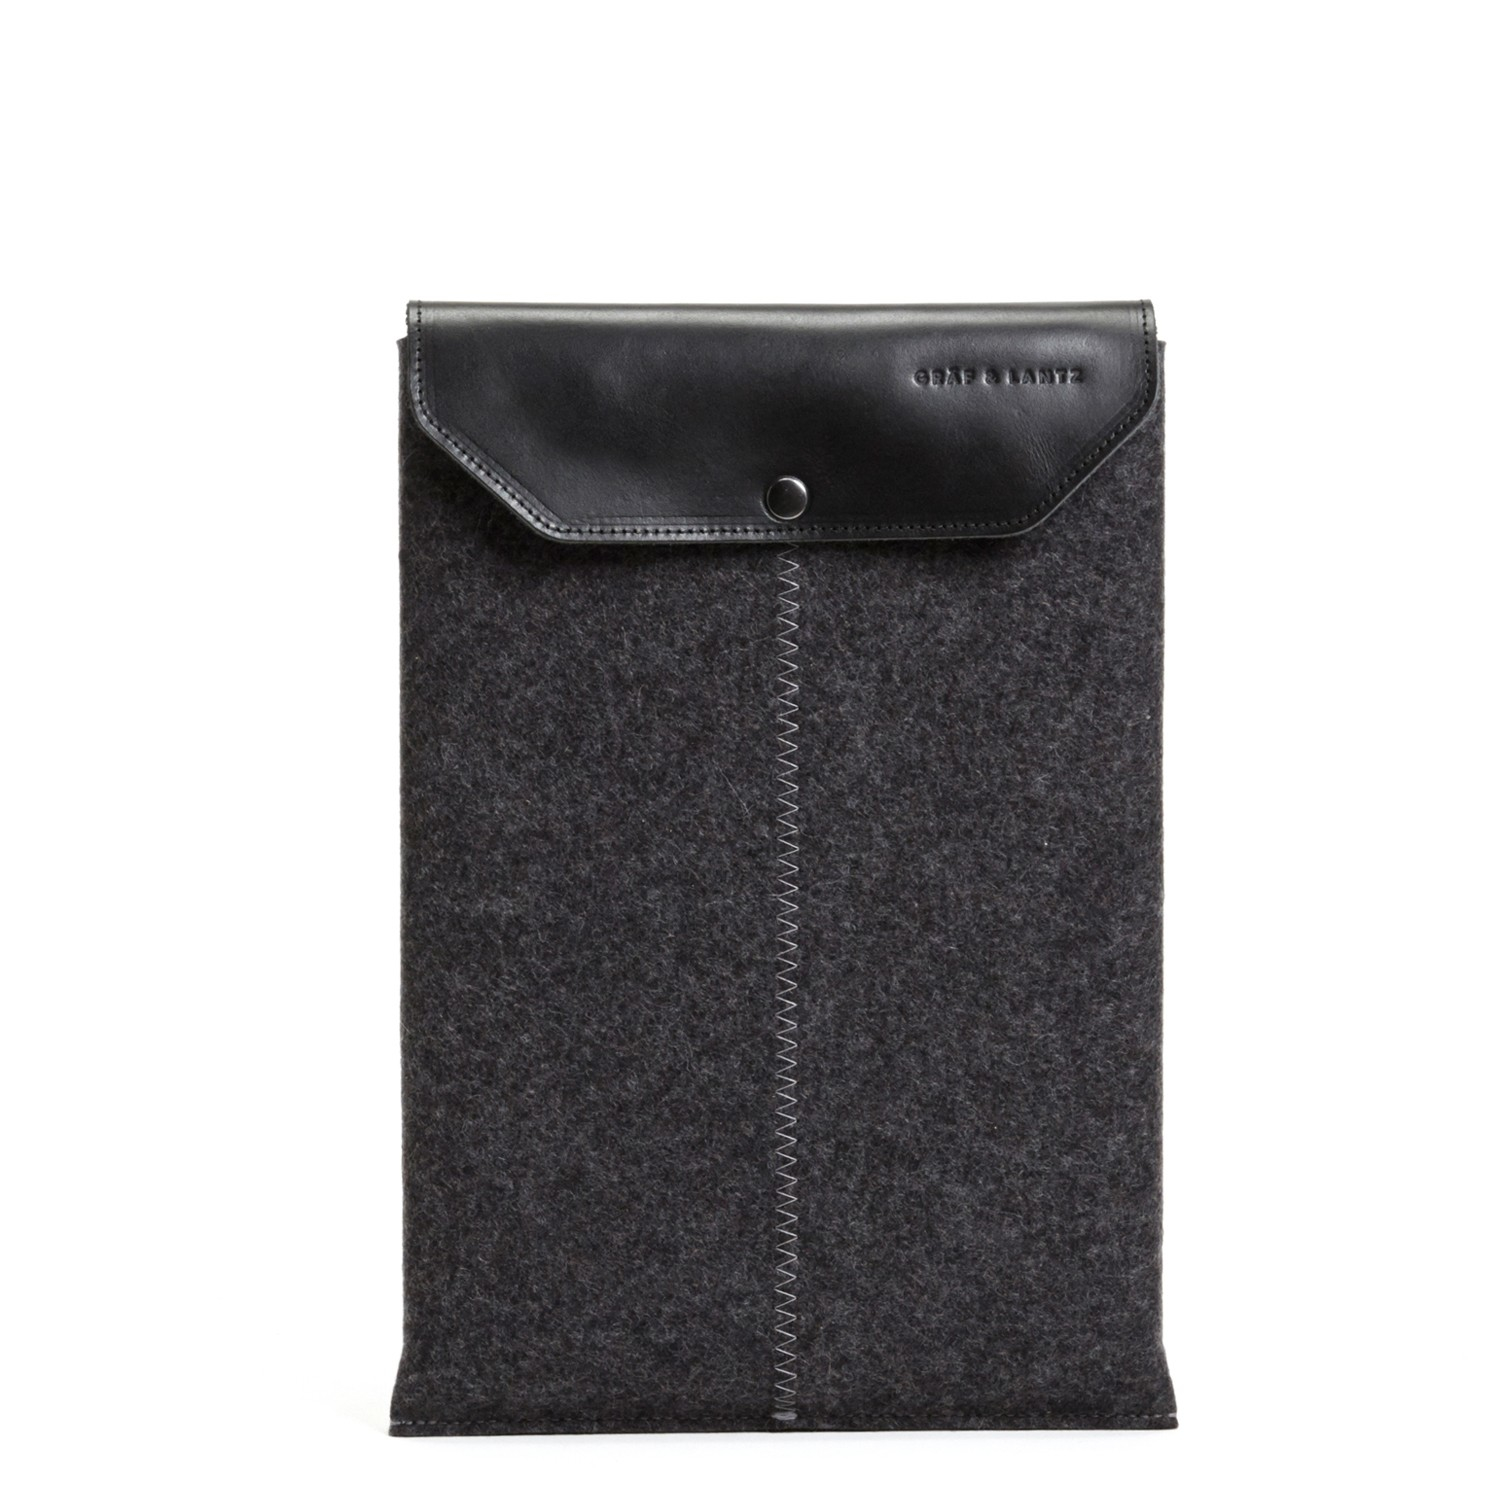 Graf lantz macbook pro sleeve charcoal 13 in black lyst for Housse macbook air 13 paul smith